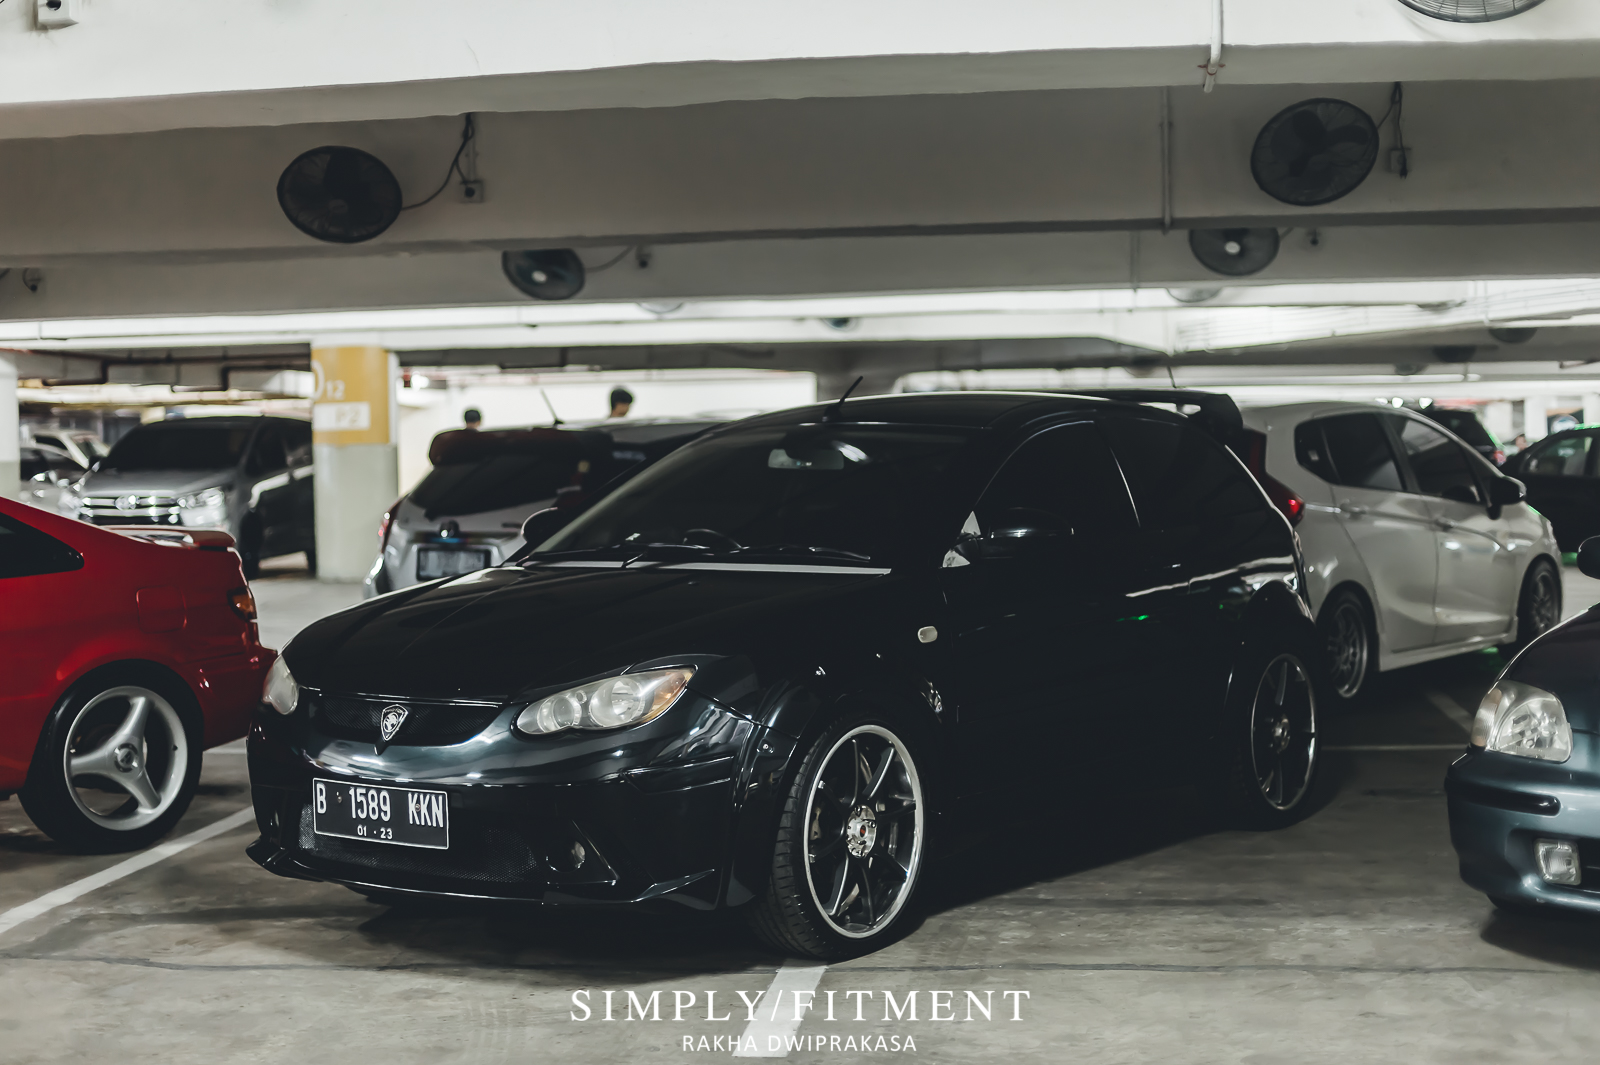 LOWFITMENT DAY 6